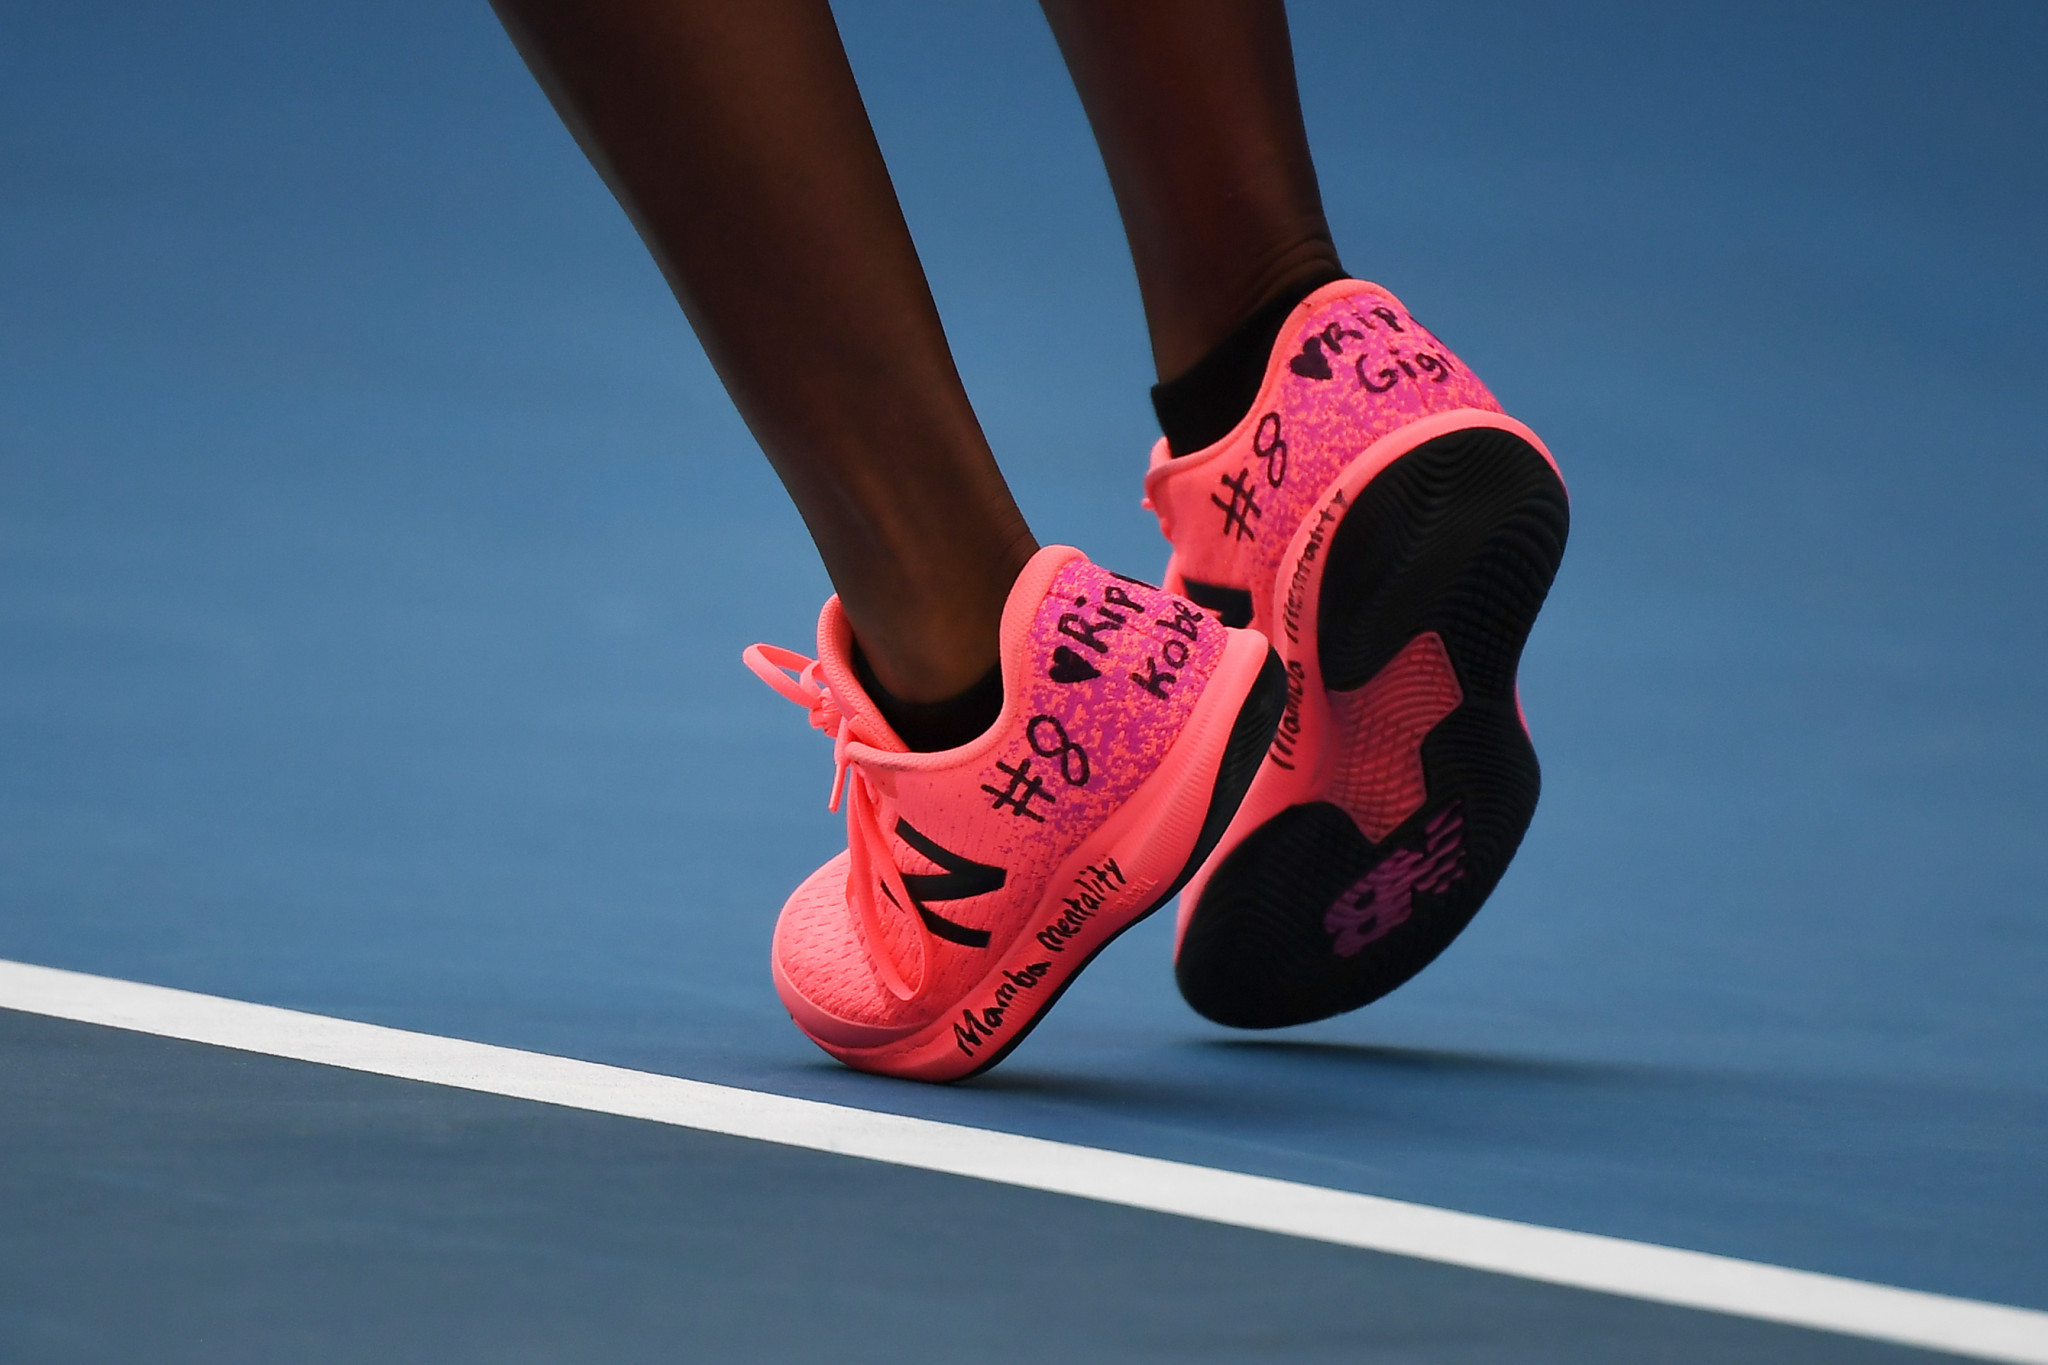 American tennis player Coco Gauff wrote a message of tribute to Kobe Bryant on her shoes during the Australian Open ©Getty Images